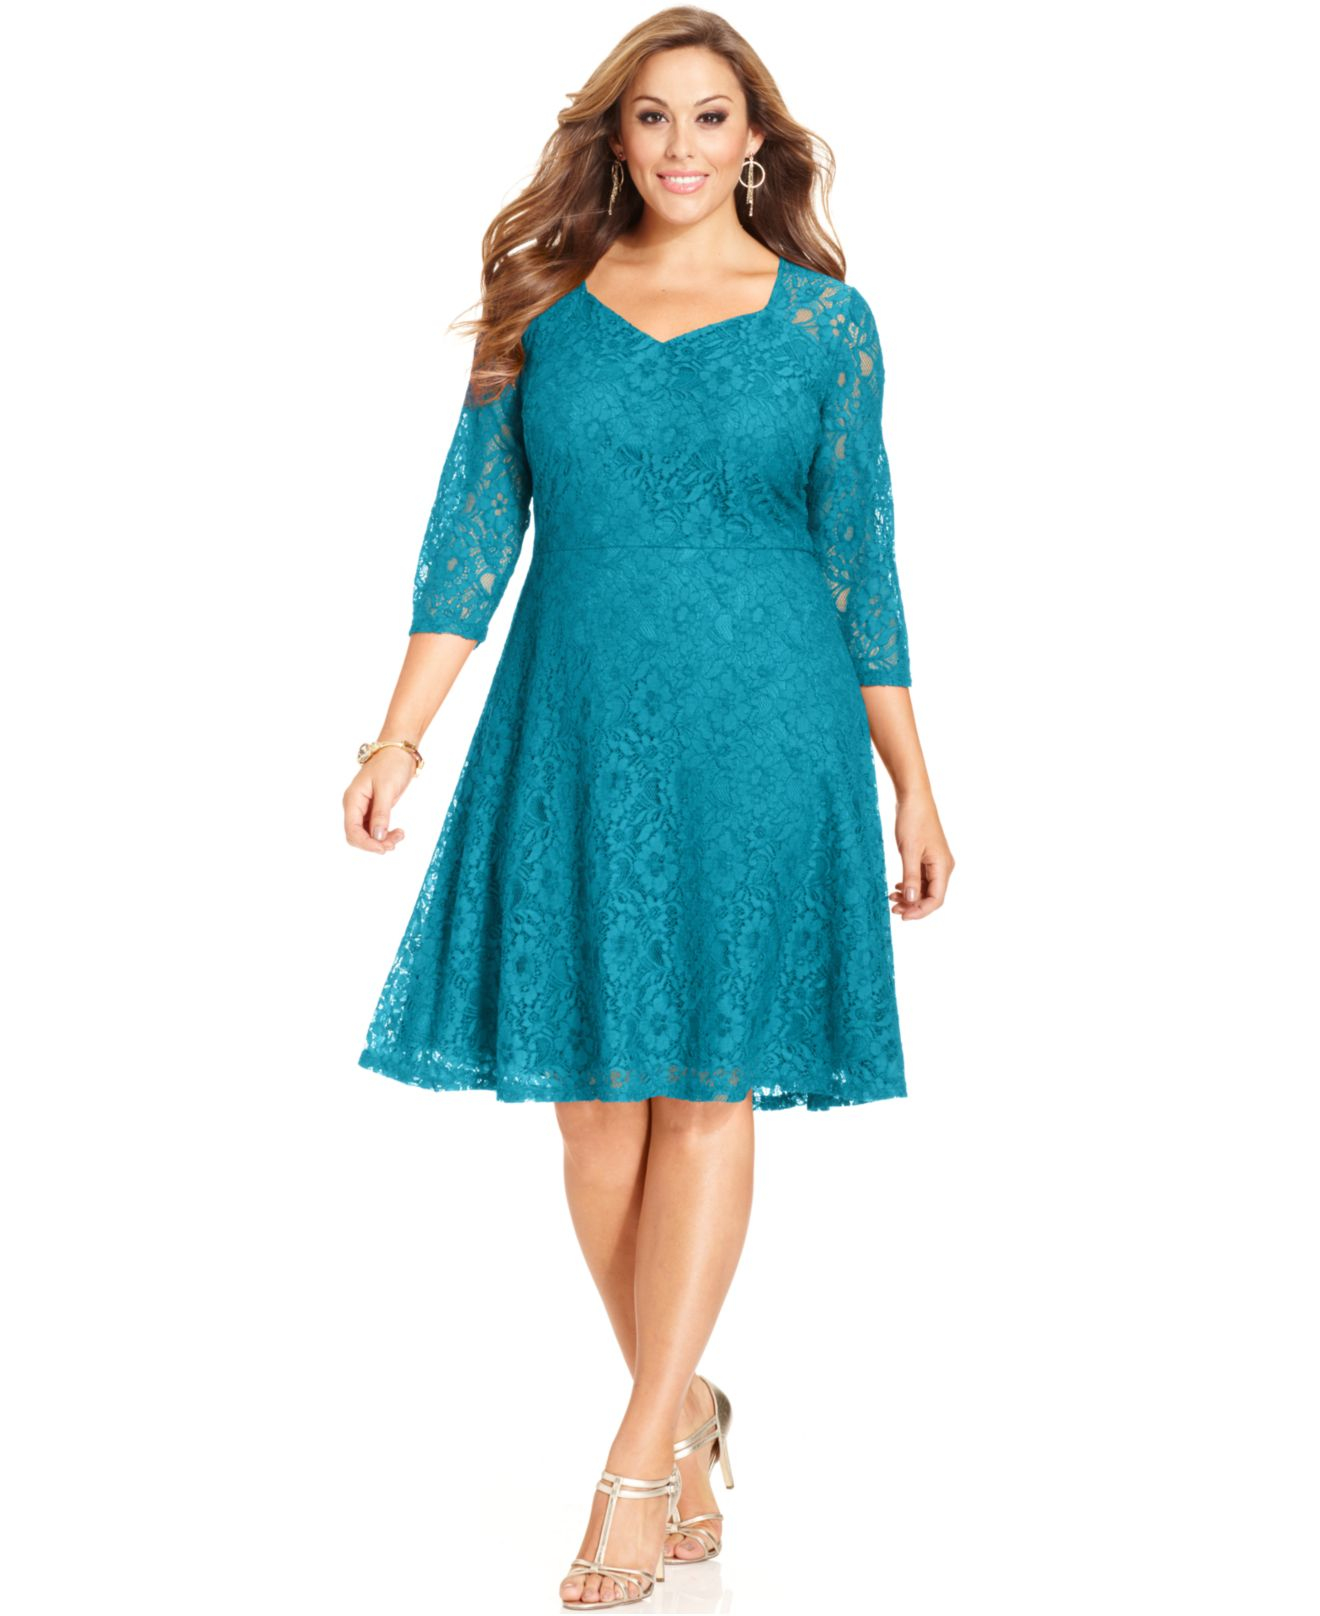 Lyst - Spense Plus Size Three-quarter-sleeve Lace A-line Dress in Blue